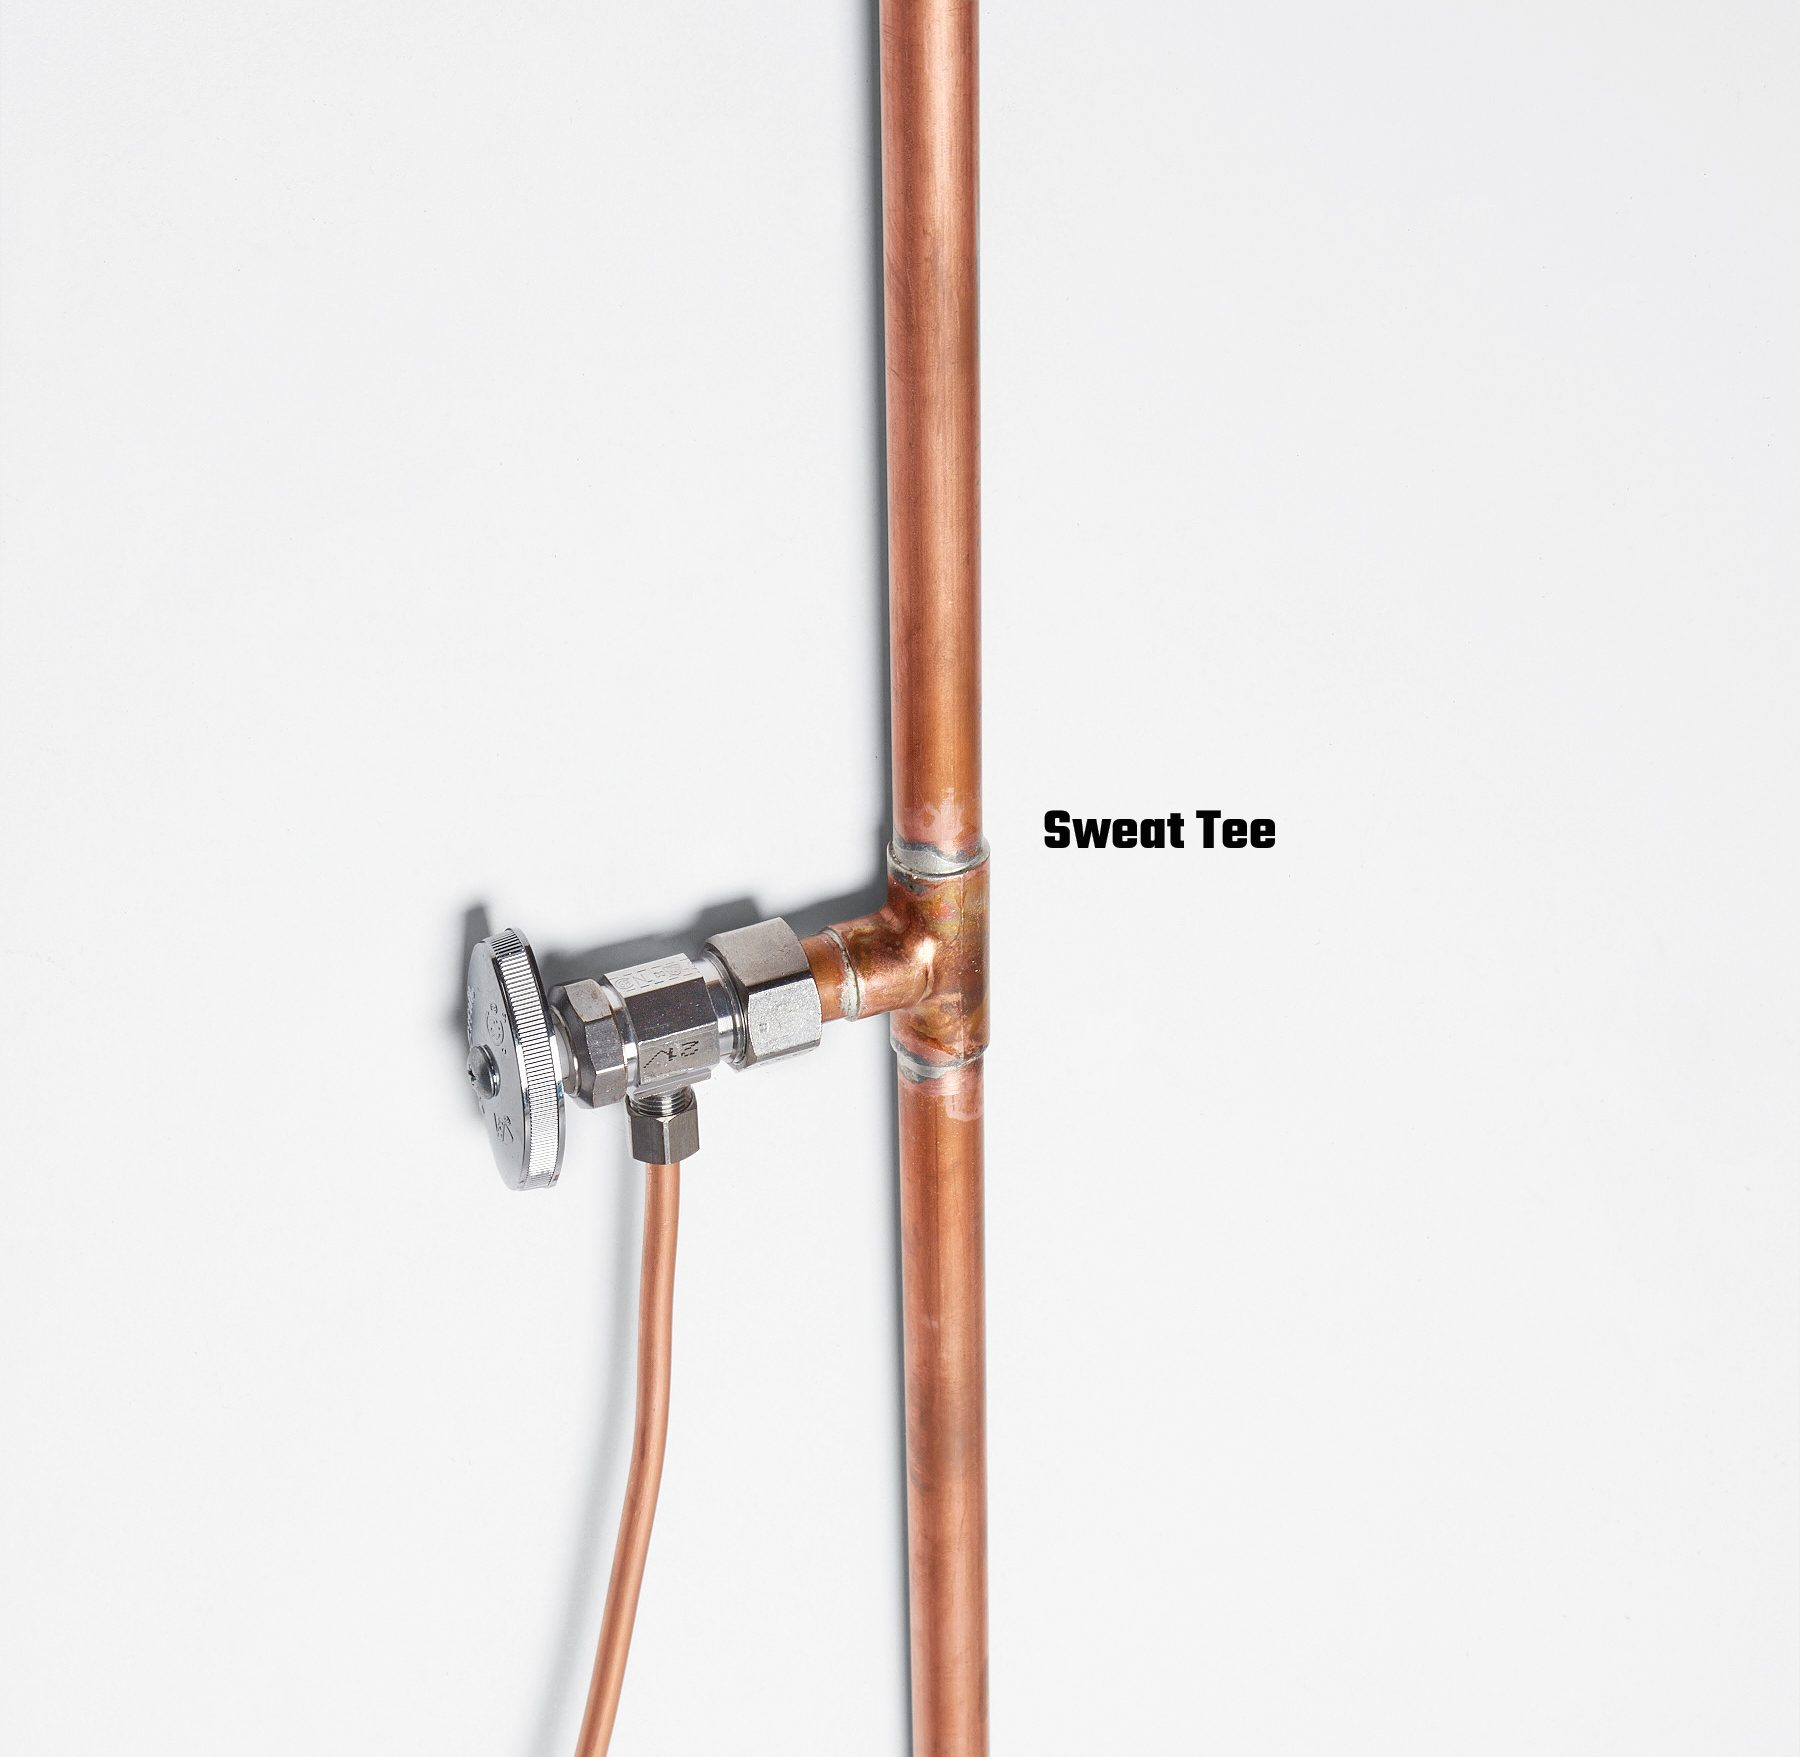 A Good Example of a Sweat Tee | Construction Pro Tips